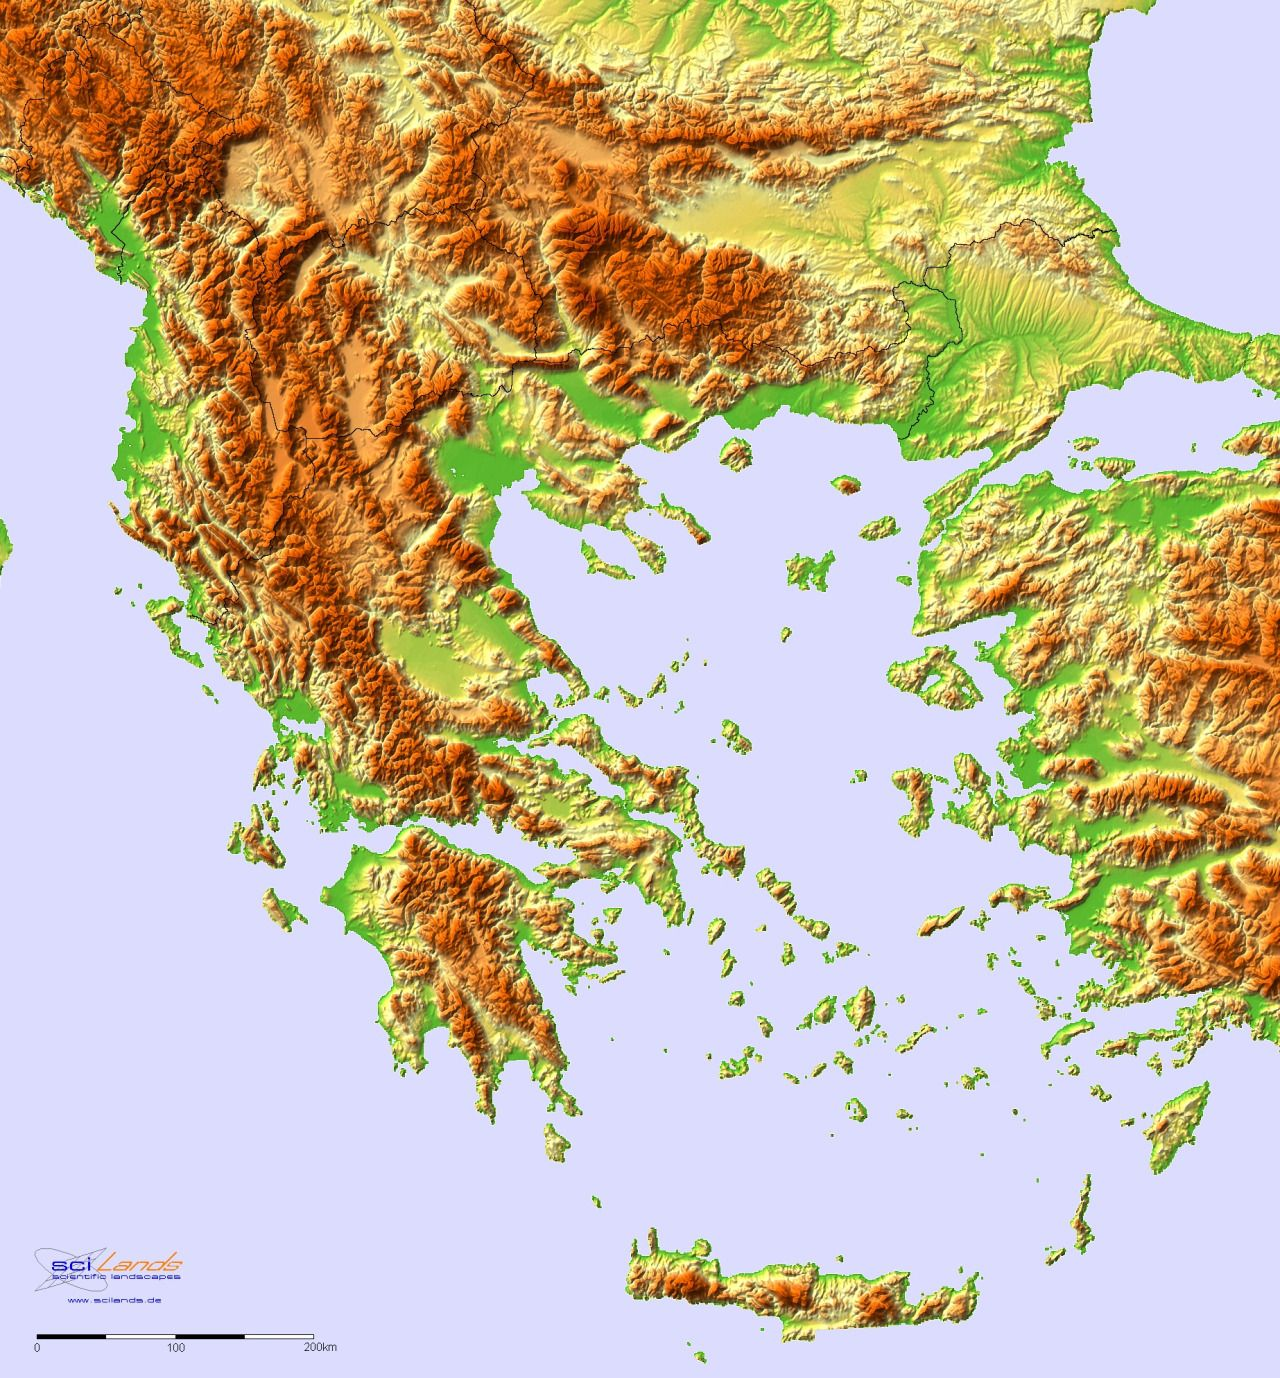 Topographic hillshade map of Balkan Peninsula. More relief maps ...